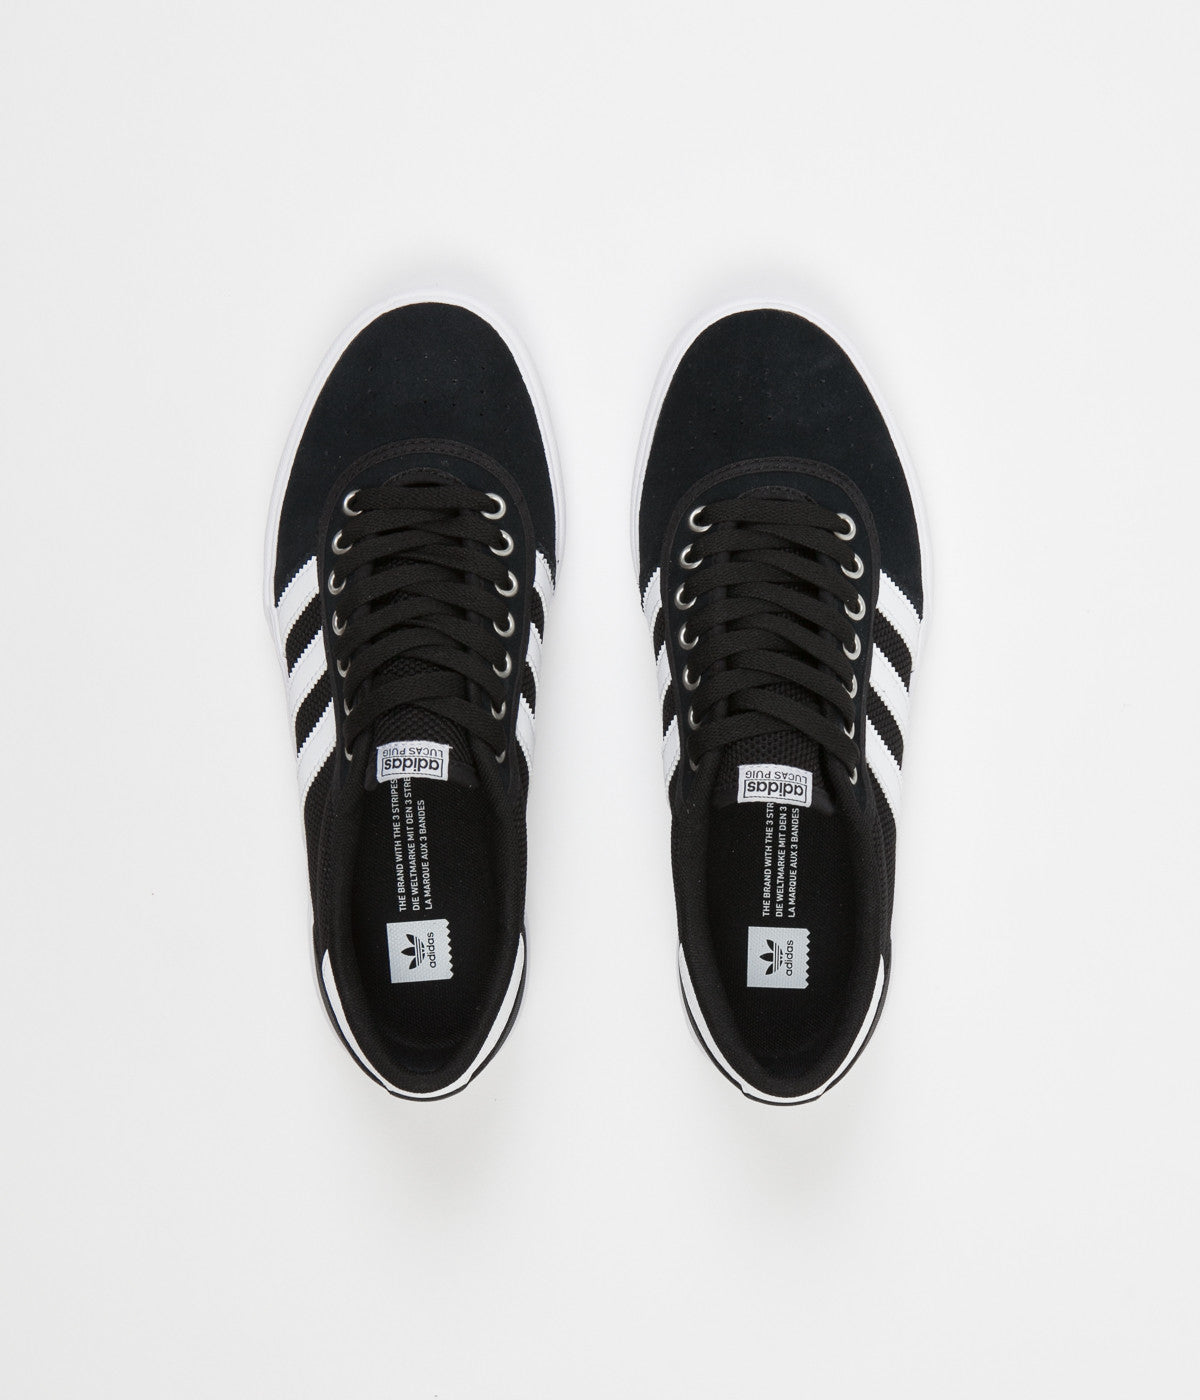 Adidas Lucas Premiere ADV Shoes - Core Black   White   White eb81135fe